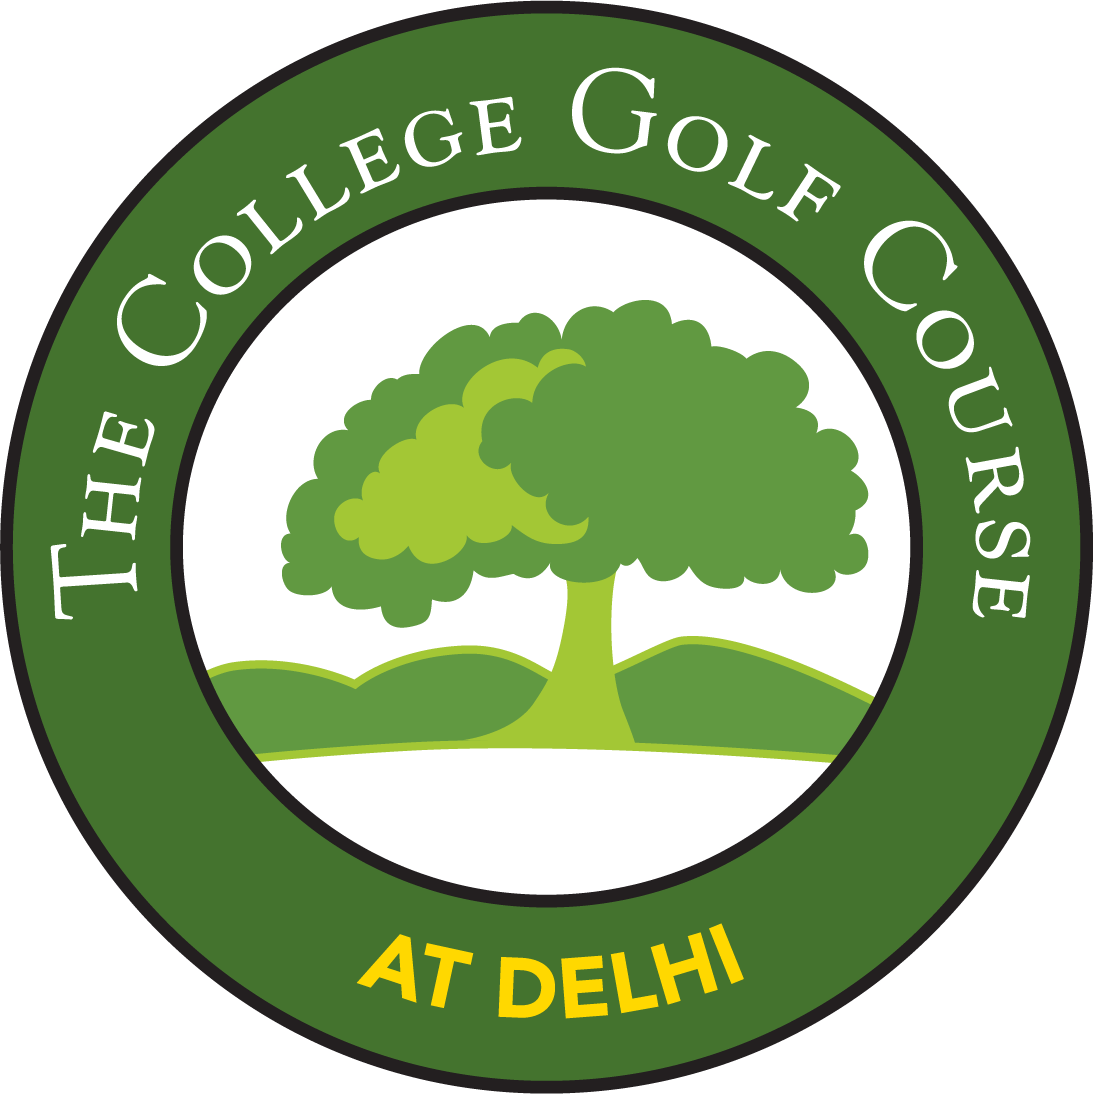 The College Golf Course at Delhi